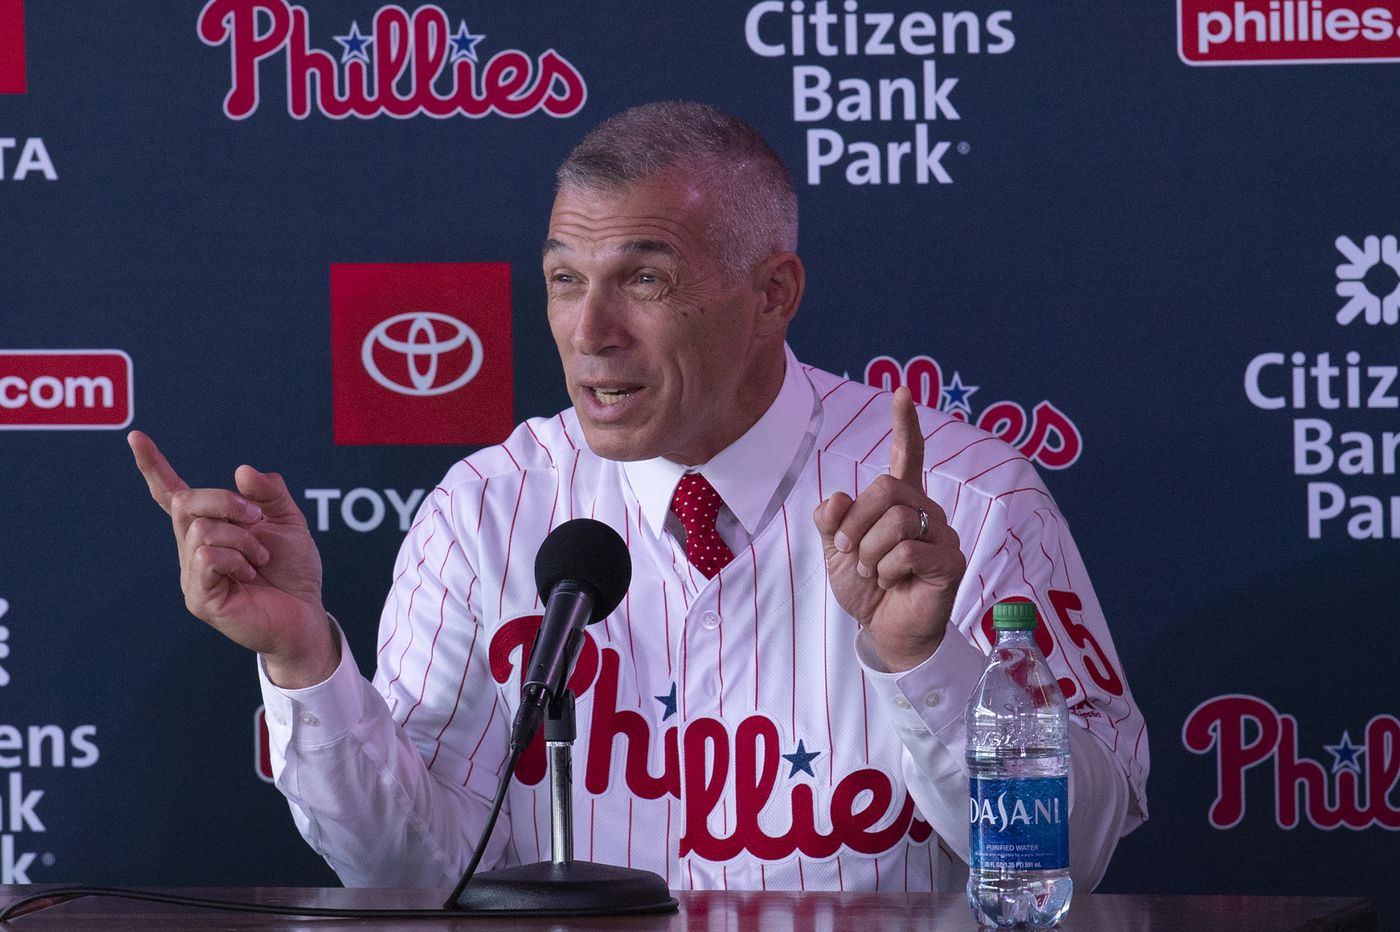 Phillies hire two coaches to complete Joe Girardi's staff